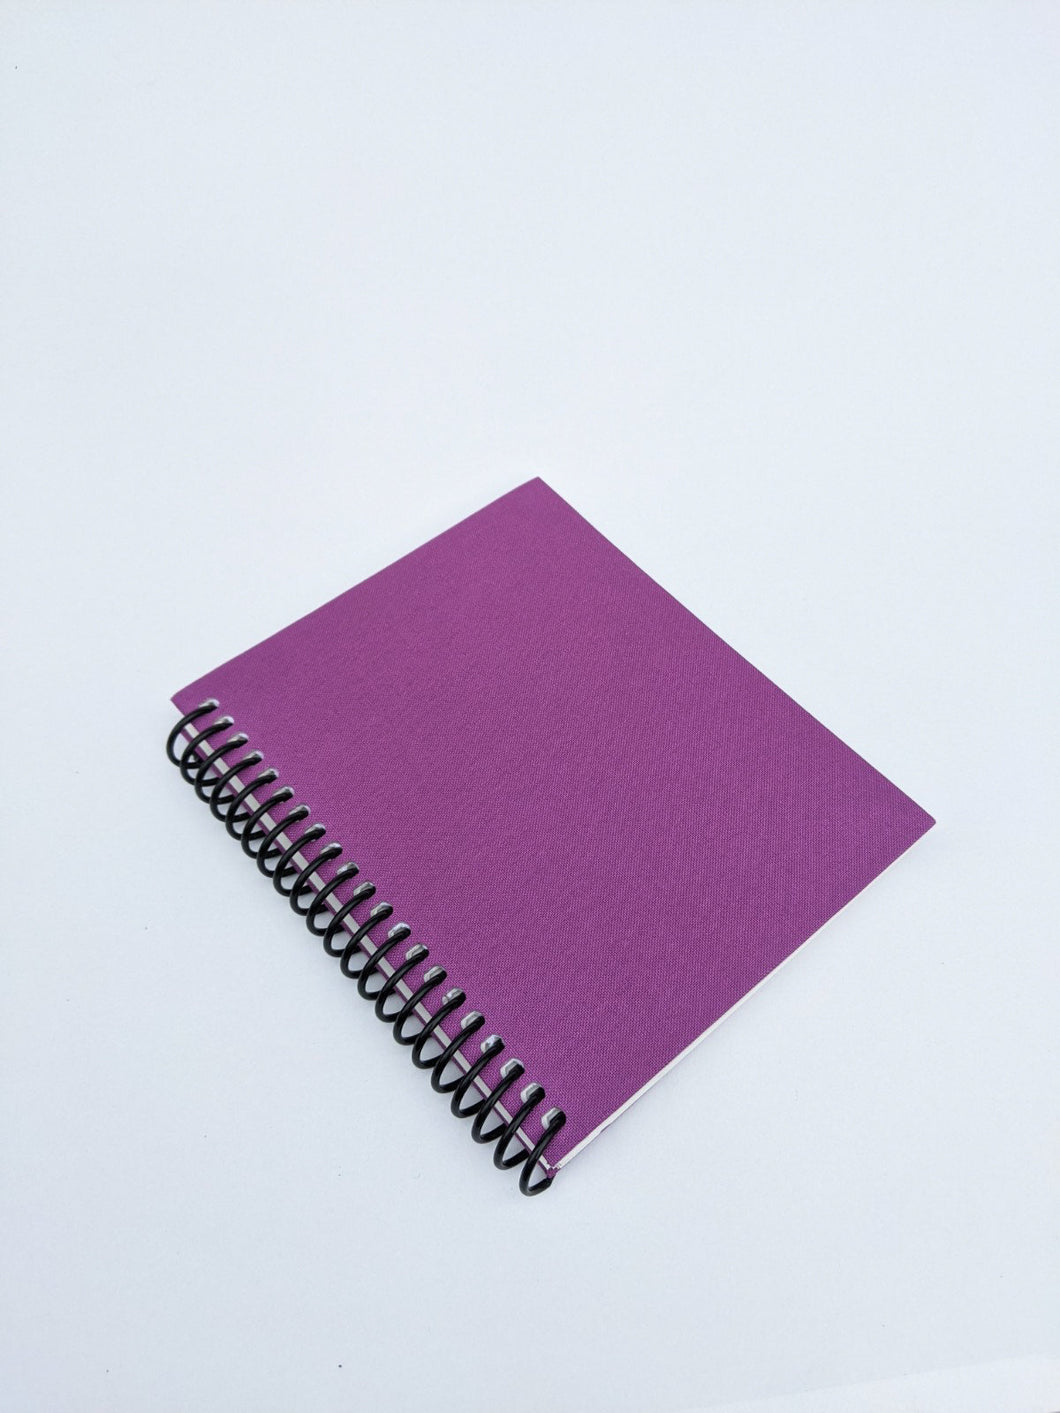 Small Purple Cloth Coil Sketchbook